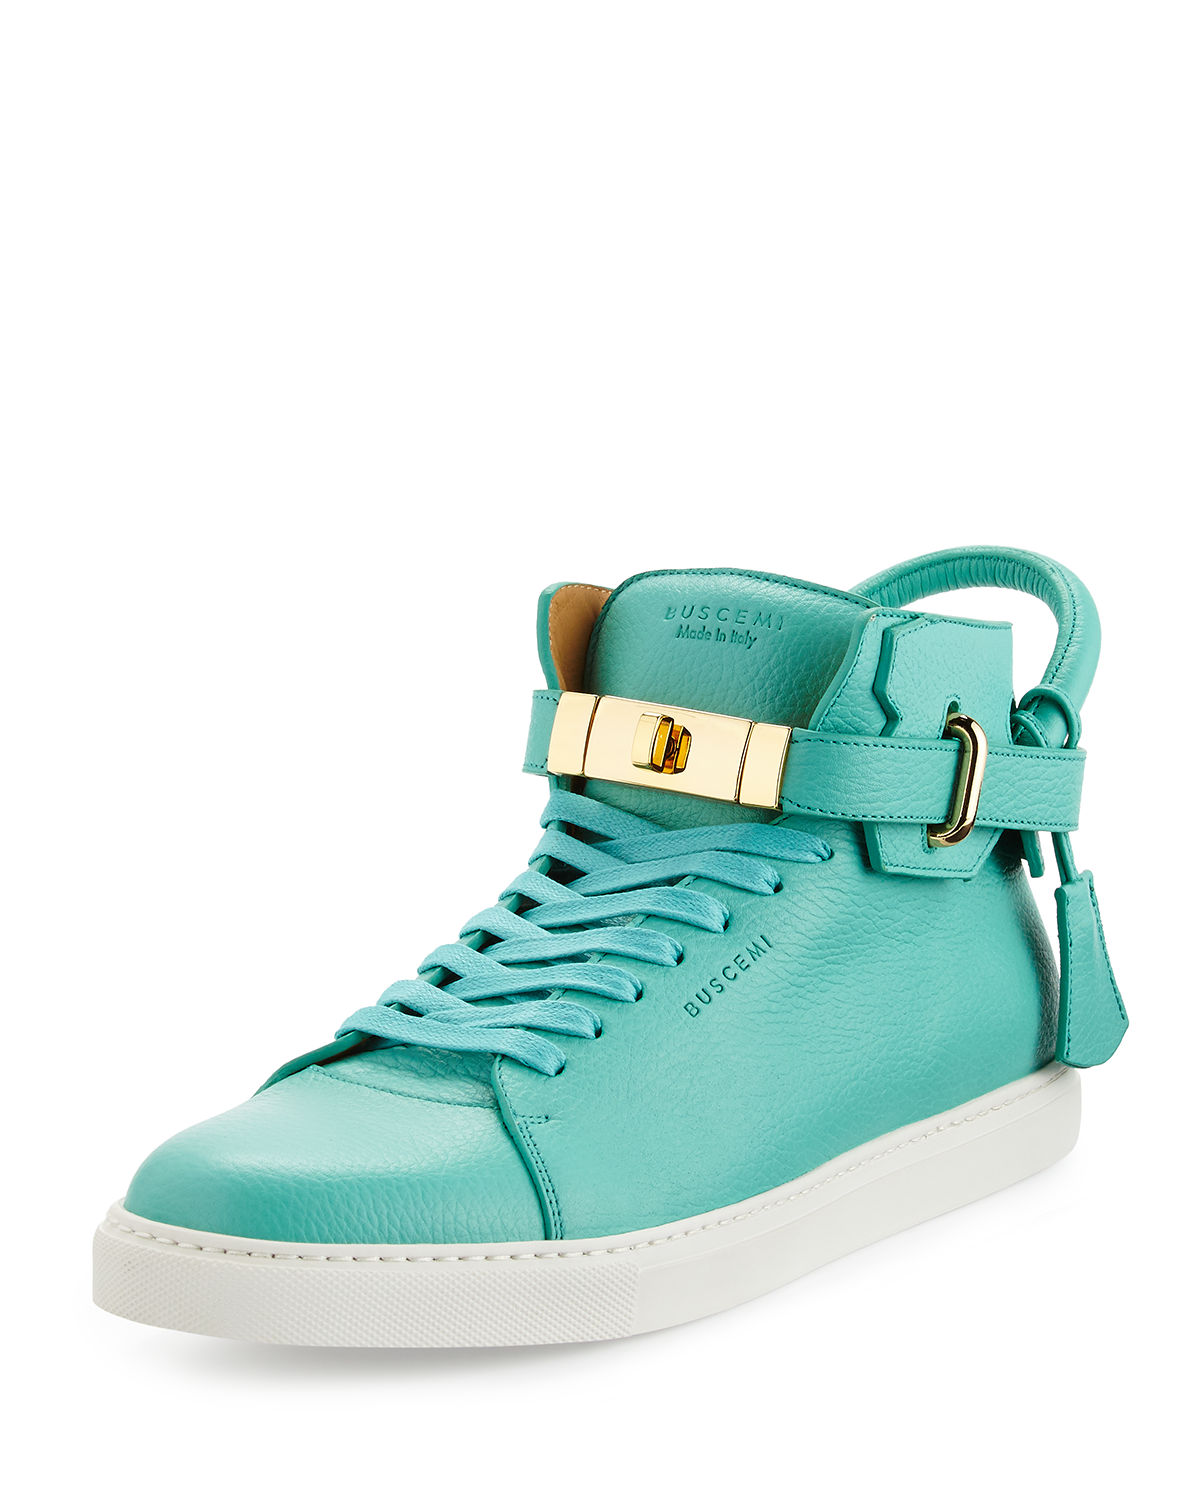 100mm Leather High Top Sneaker